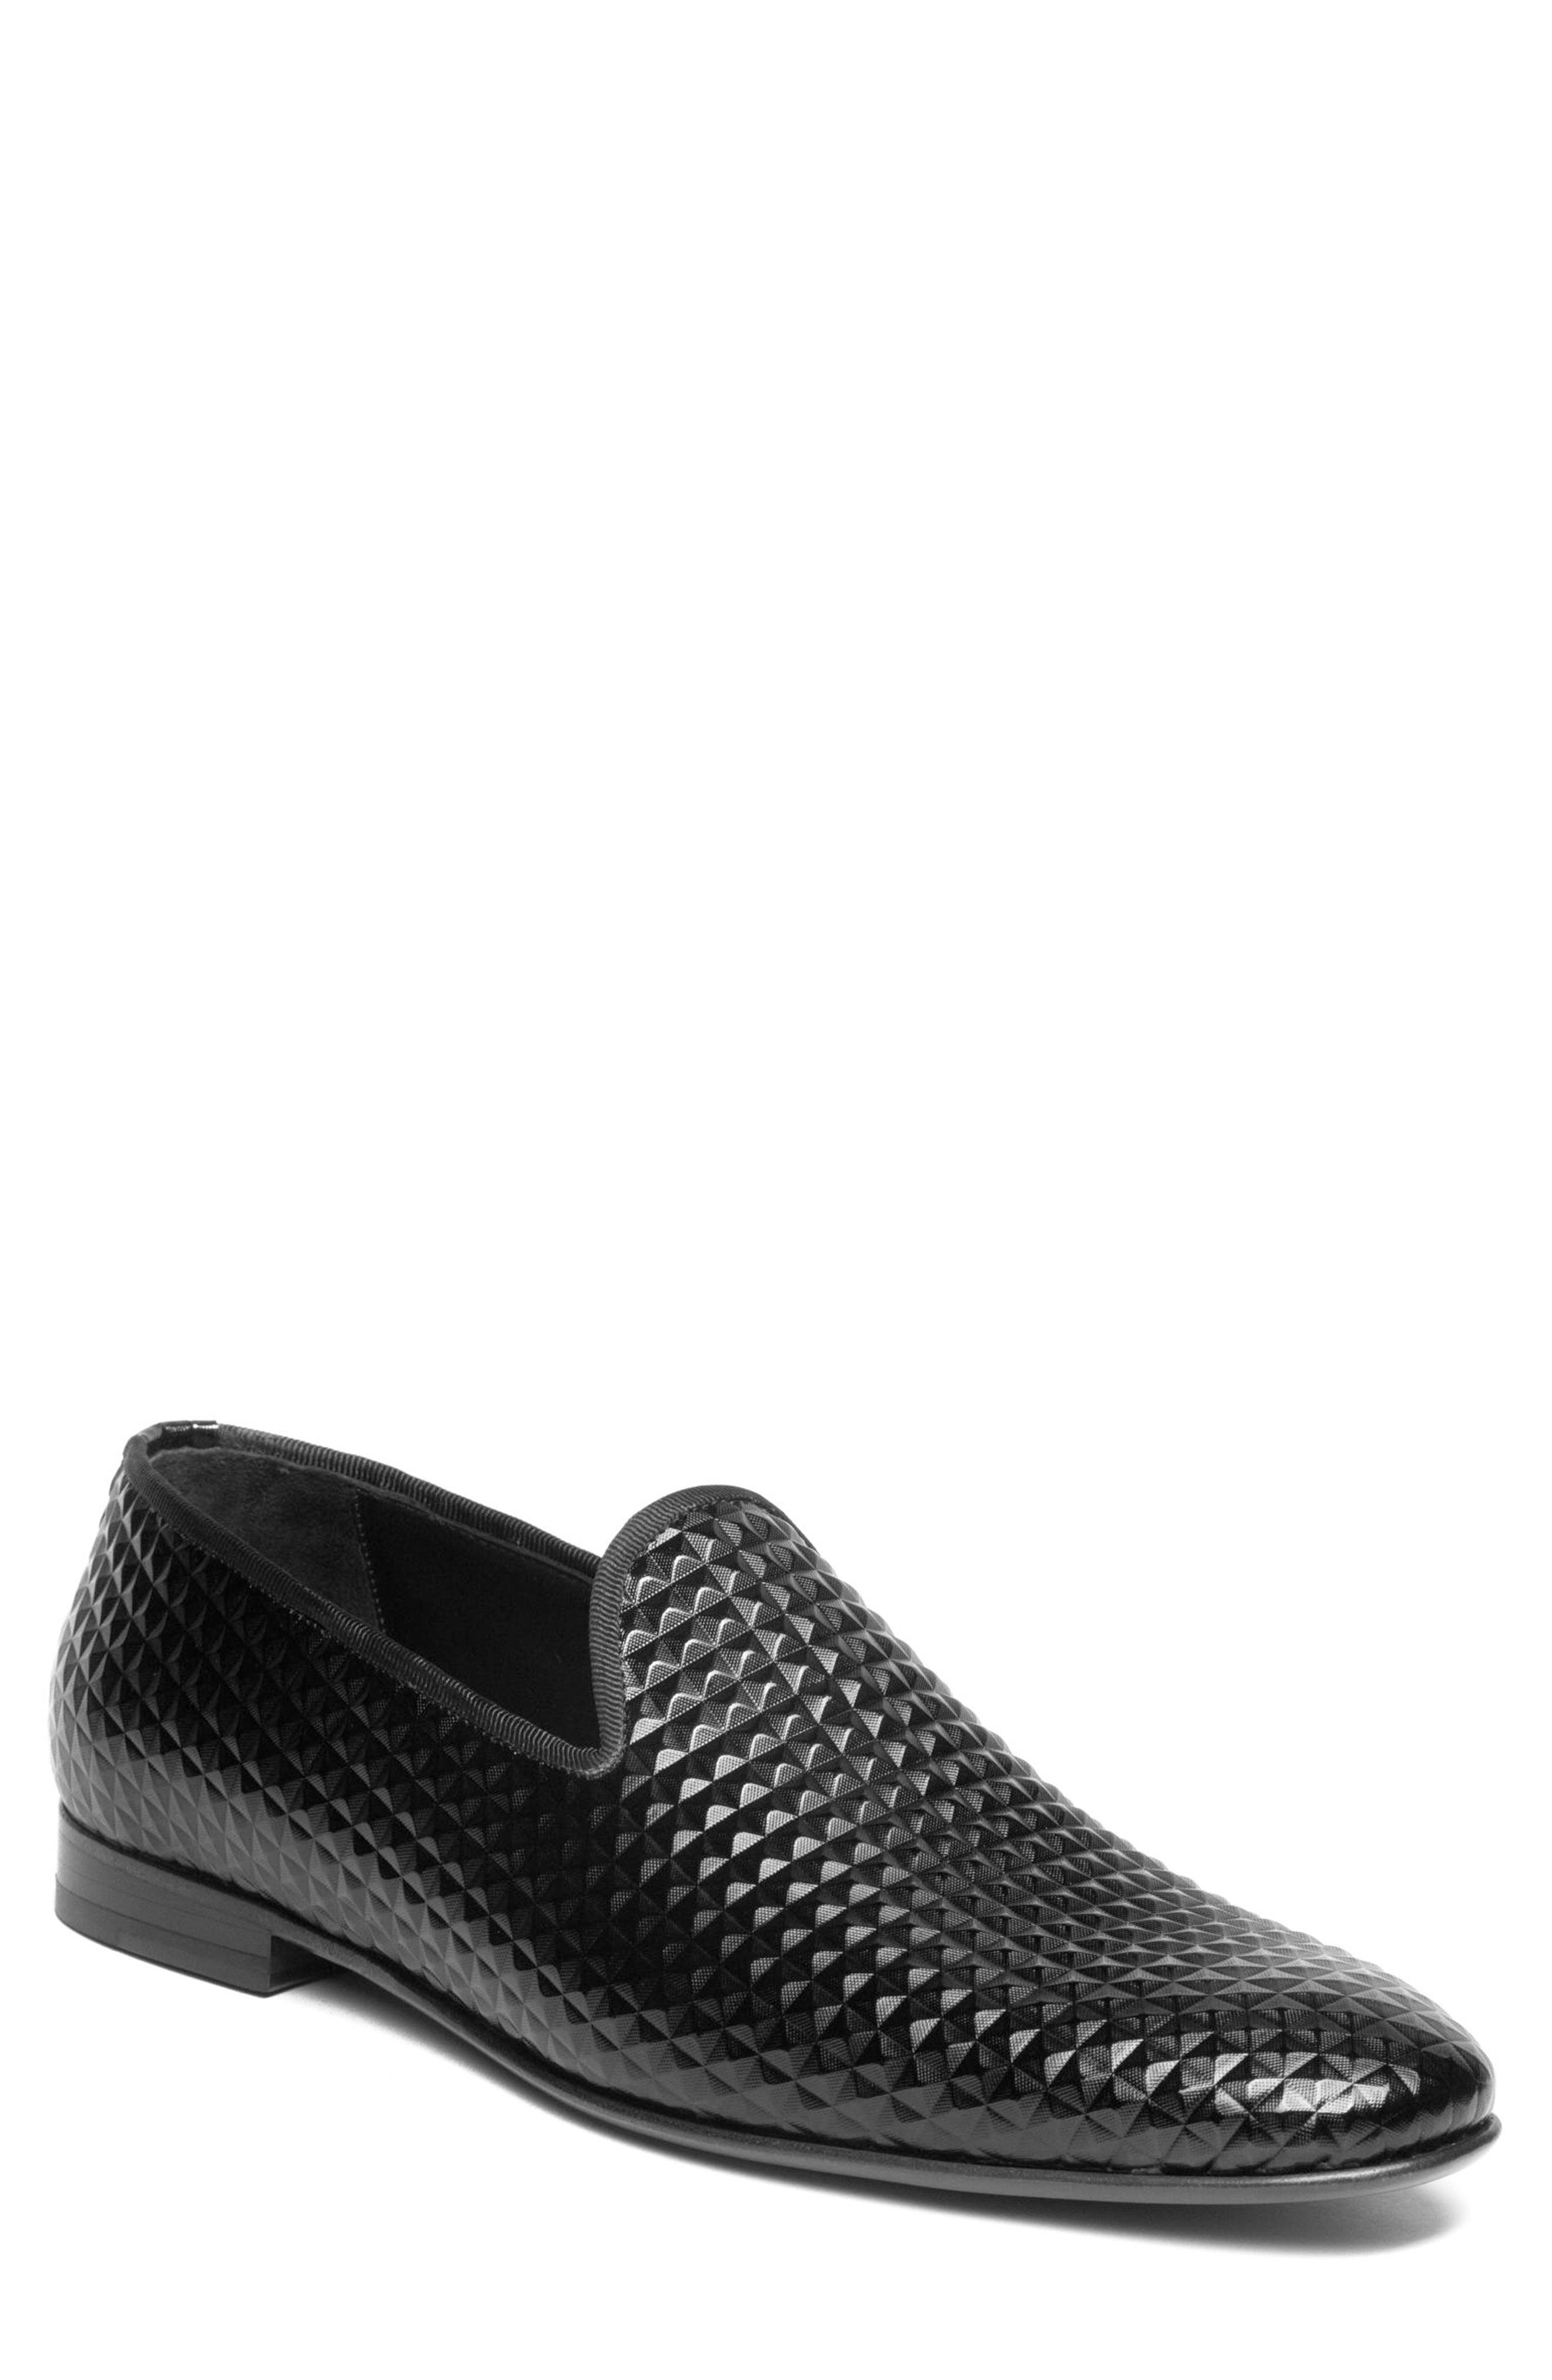 Hugh Pyramid Embossed Venetian Loafer,                             Main thumbnail 1, color,                             Black Leather